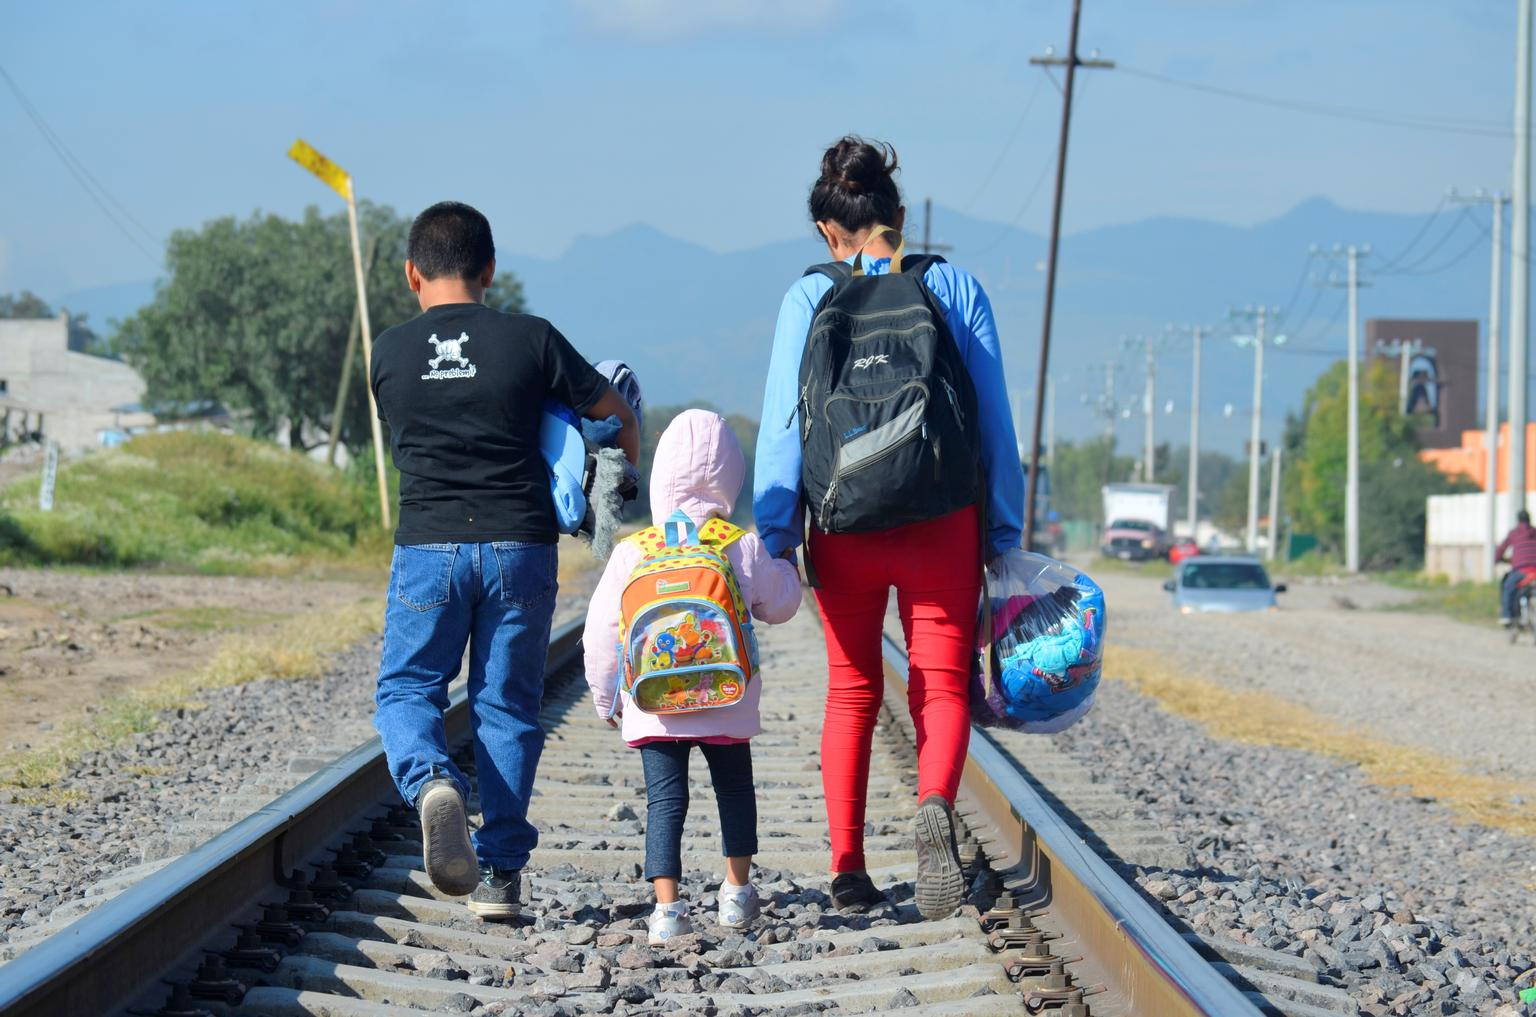 Maria, 16 (on right), from Honduras travels north with her younger siblings, expecting to cross the border to the United States to reunite with her family.